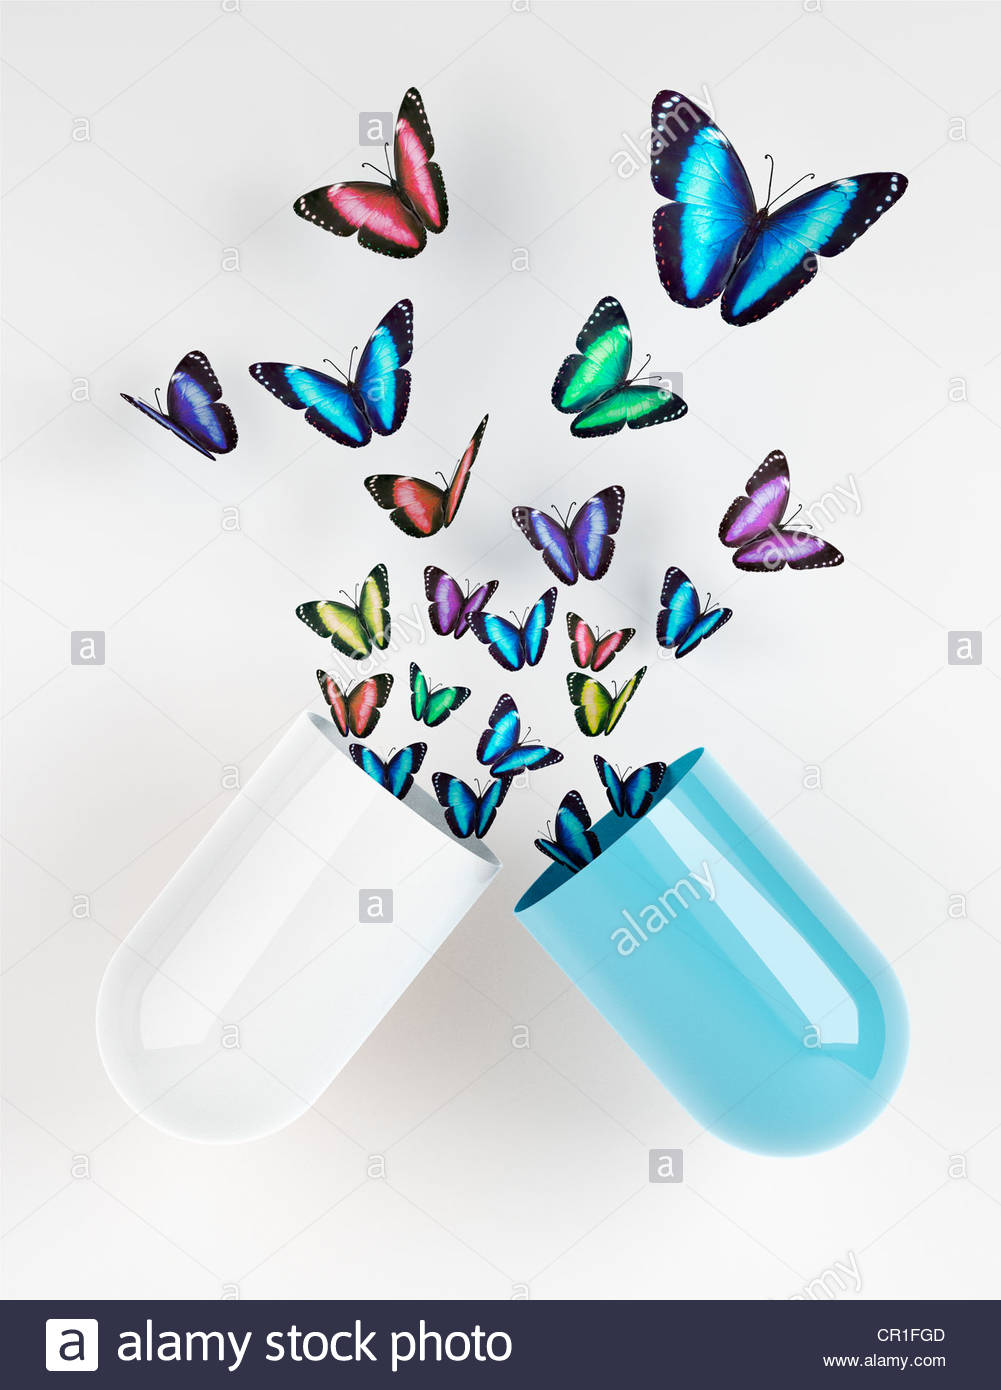 Butterflies emerging from capsule - Stock Image